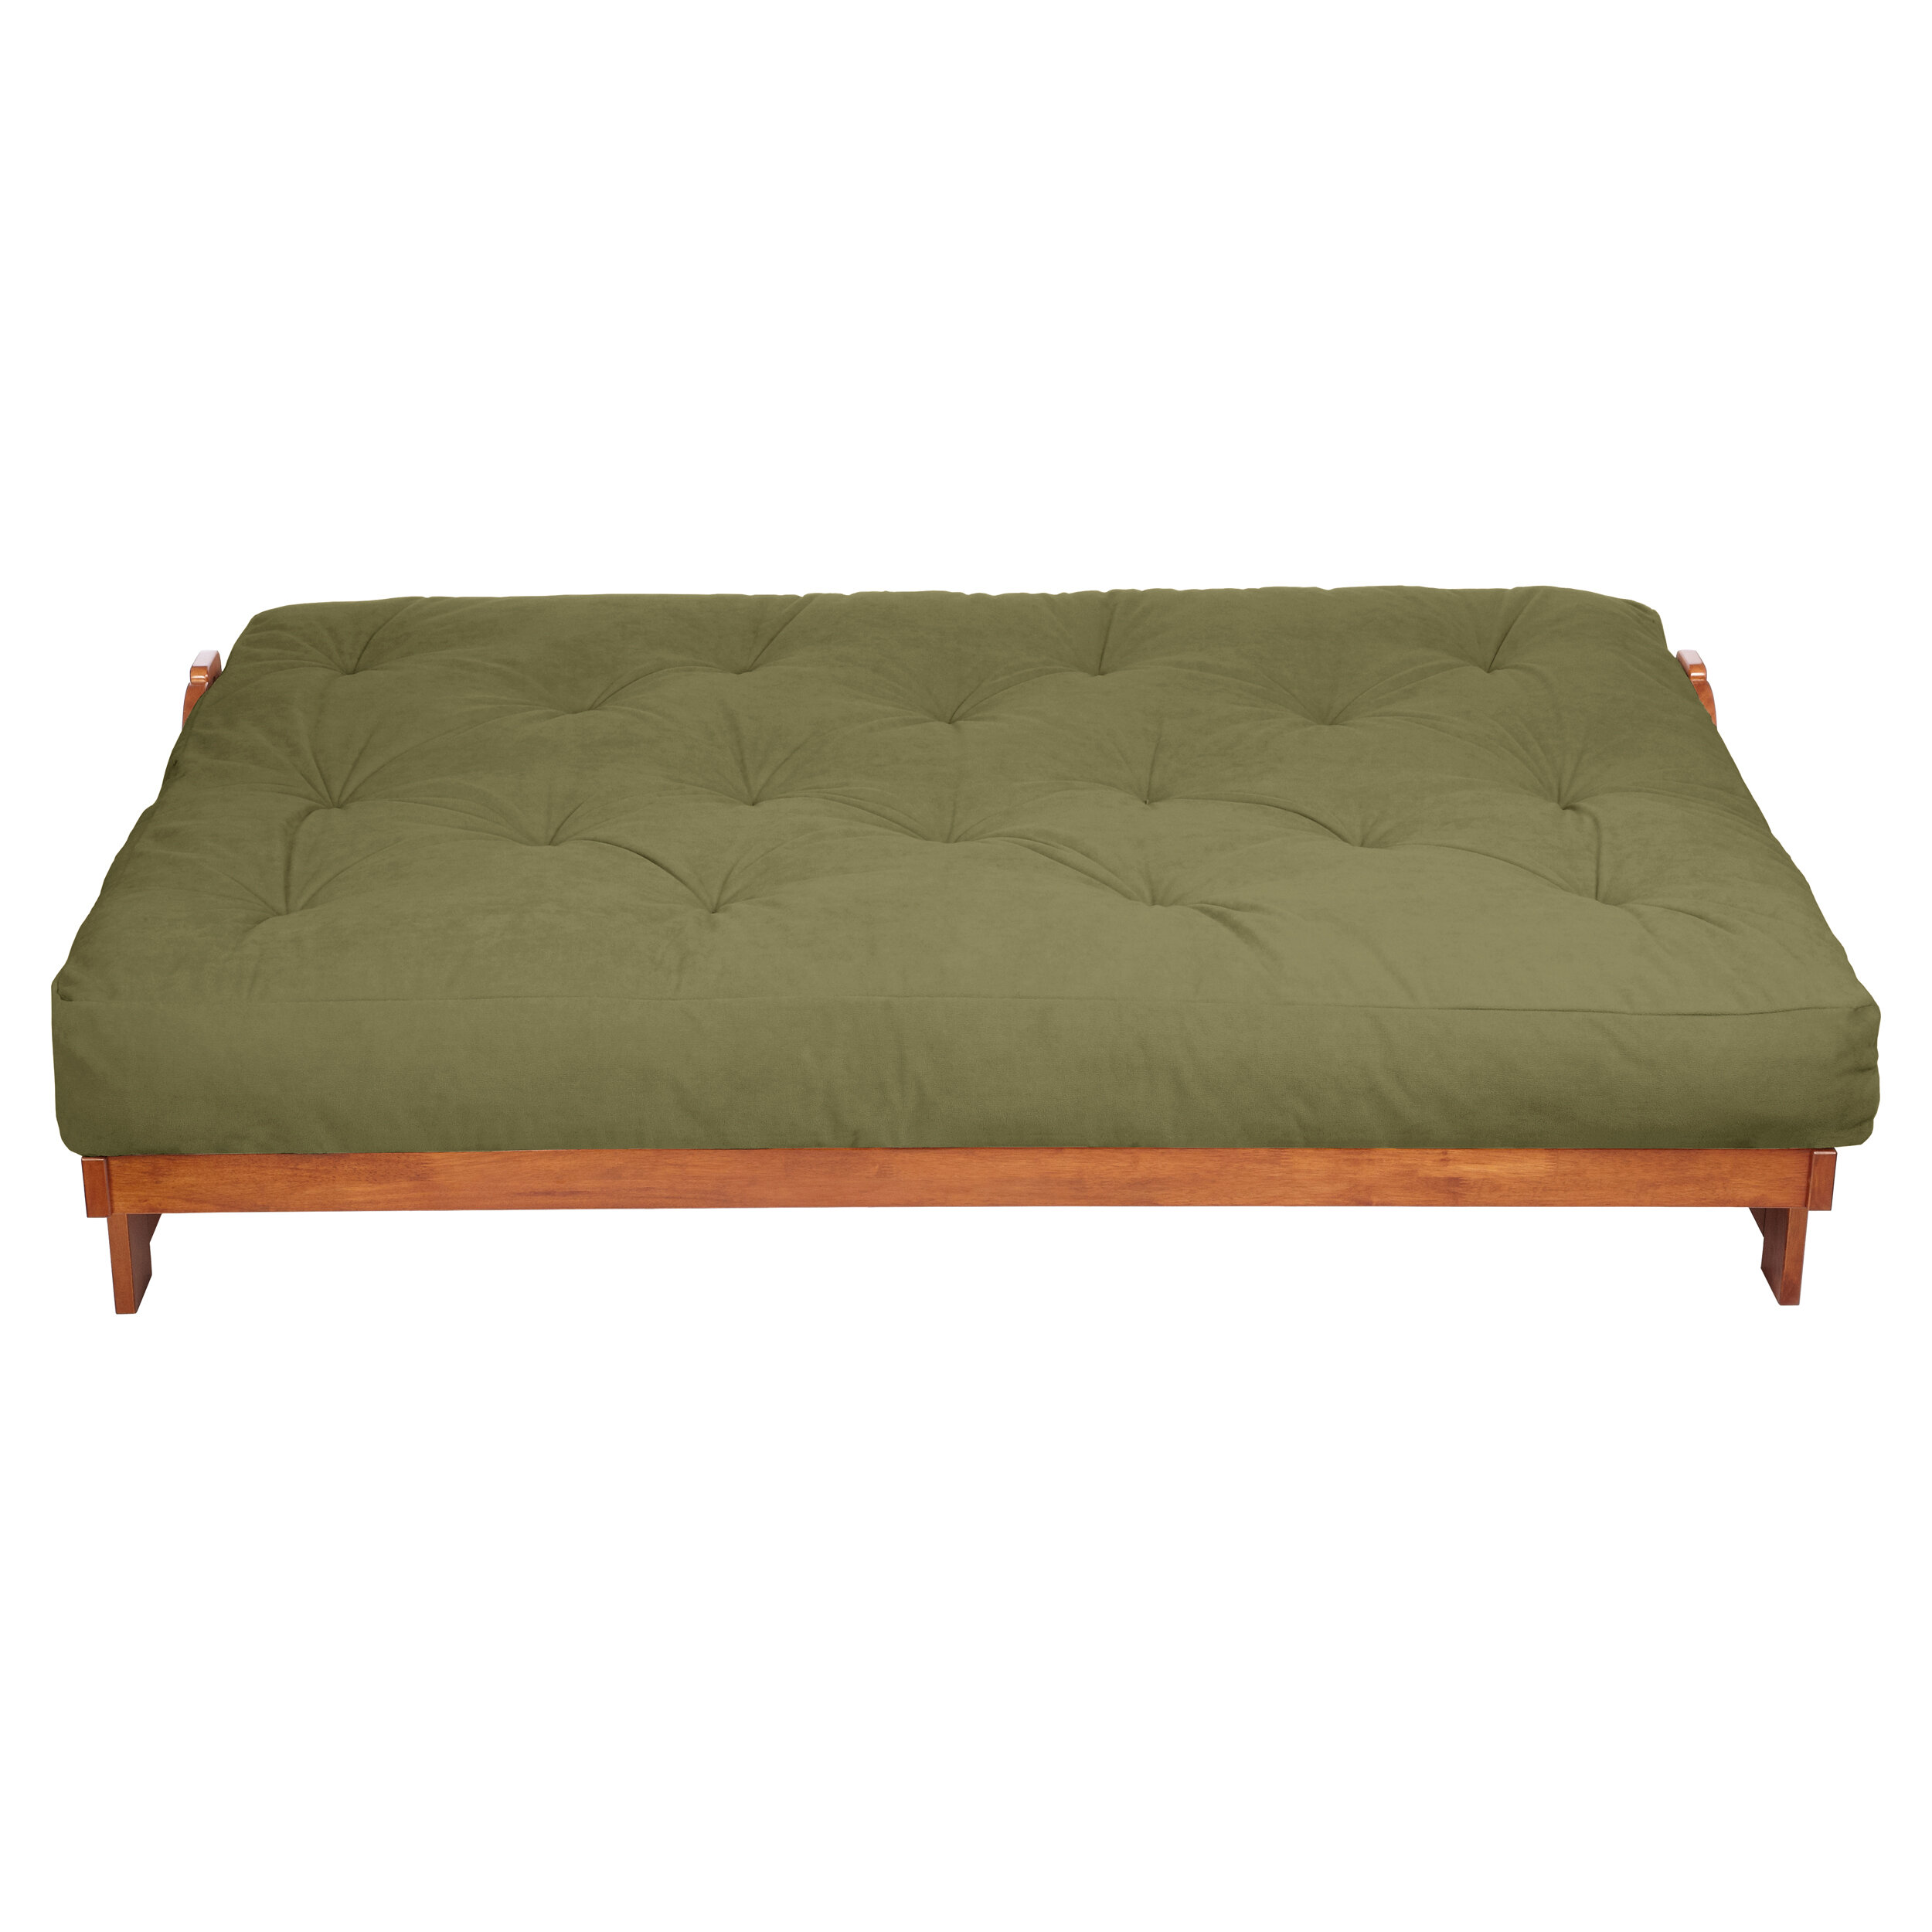 Mozaic Company 10 Suede And Gel Pocket Coil Futon Mattress Reviews Wayfair